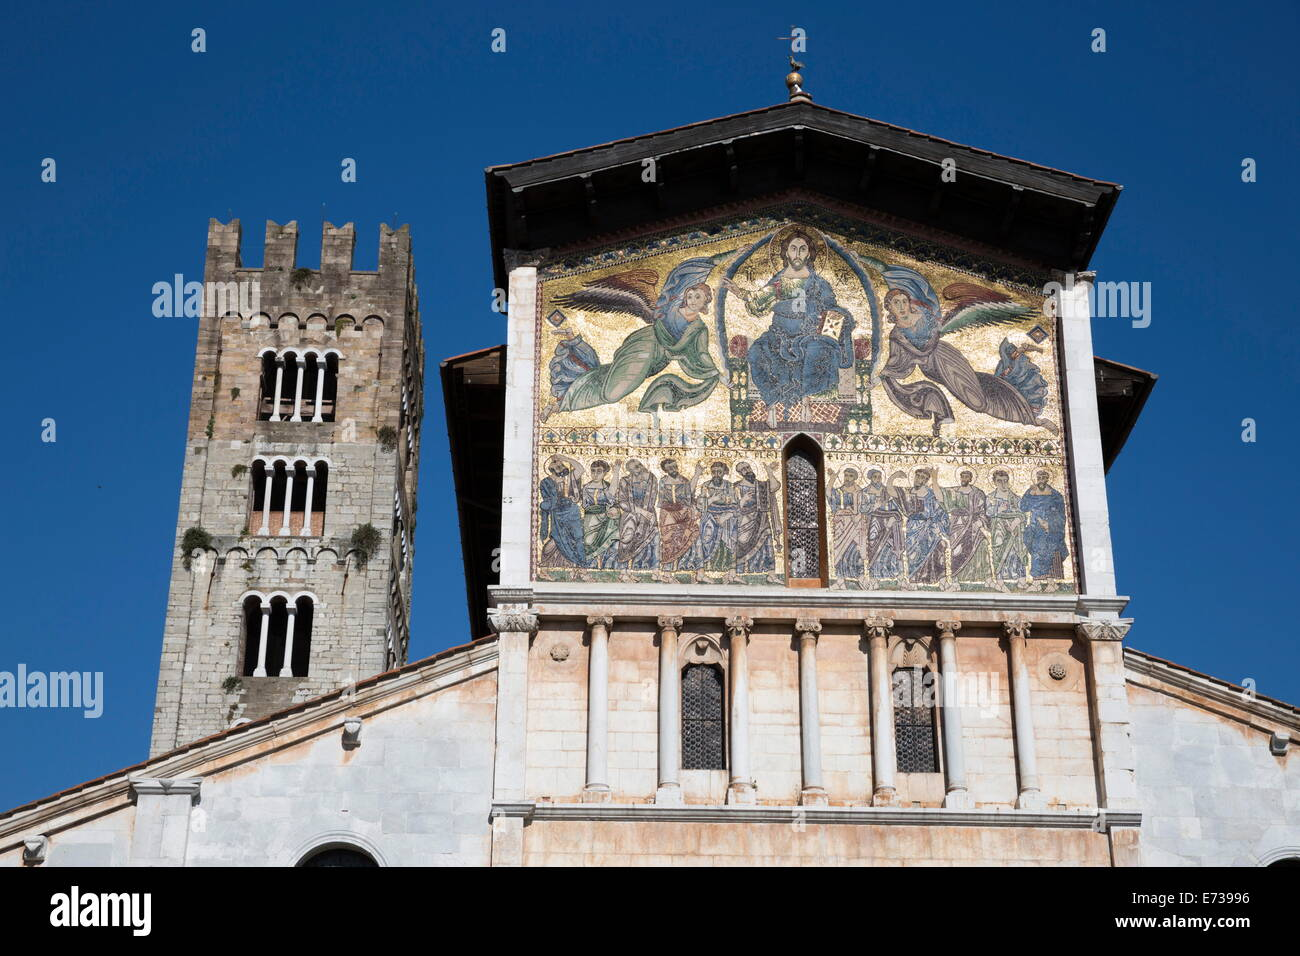 Thirteenth-century mosaic of The Ascension on the facade of San Frediano, Lucca, Tuscany, Italy, Europe Stock Photo